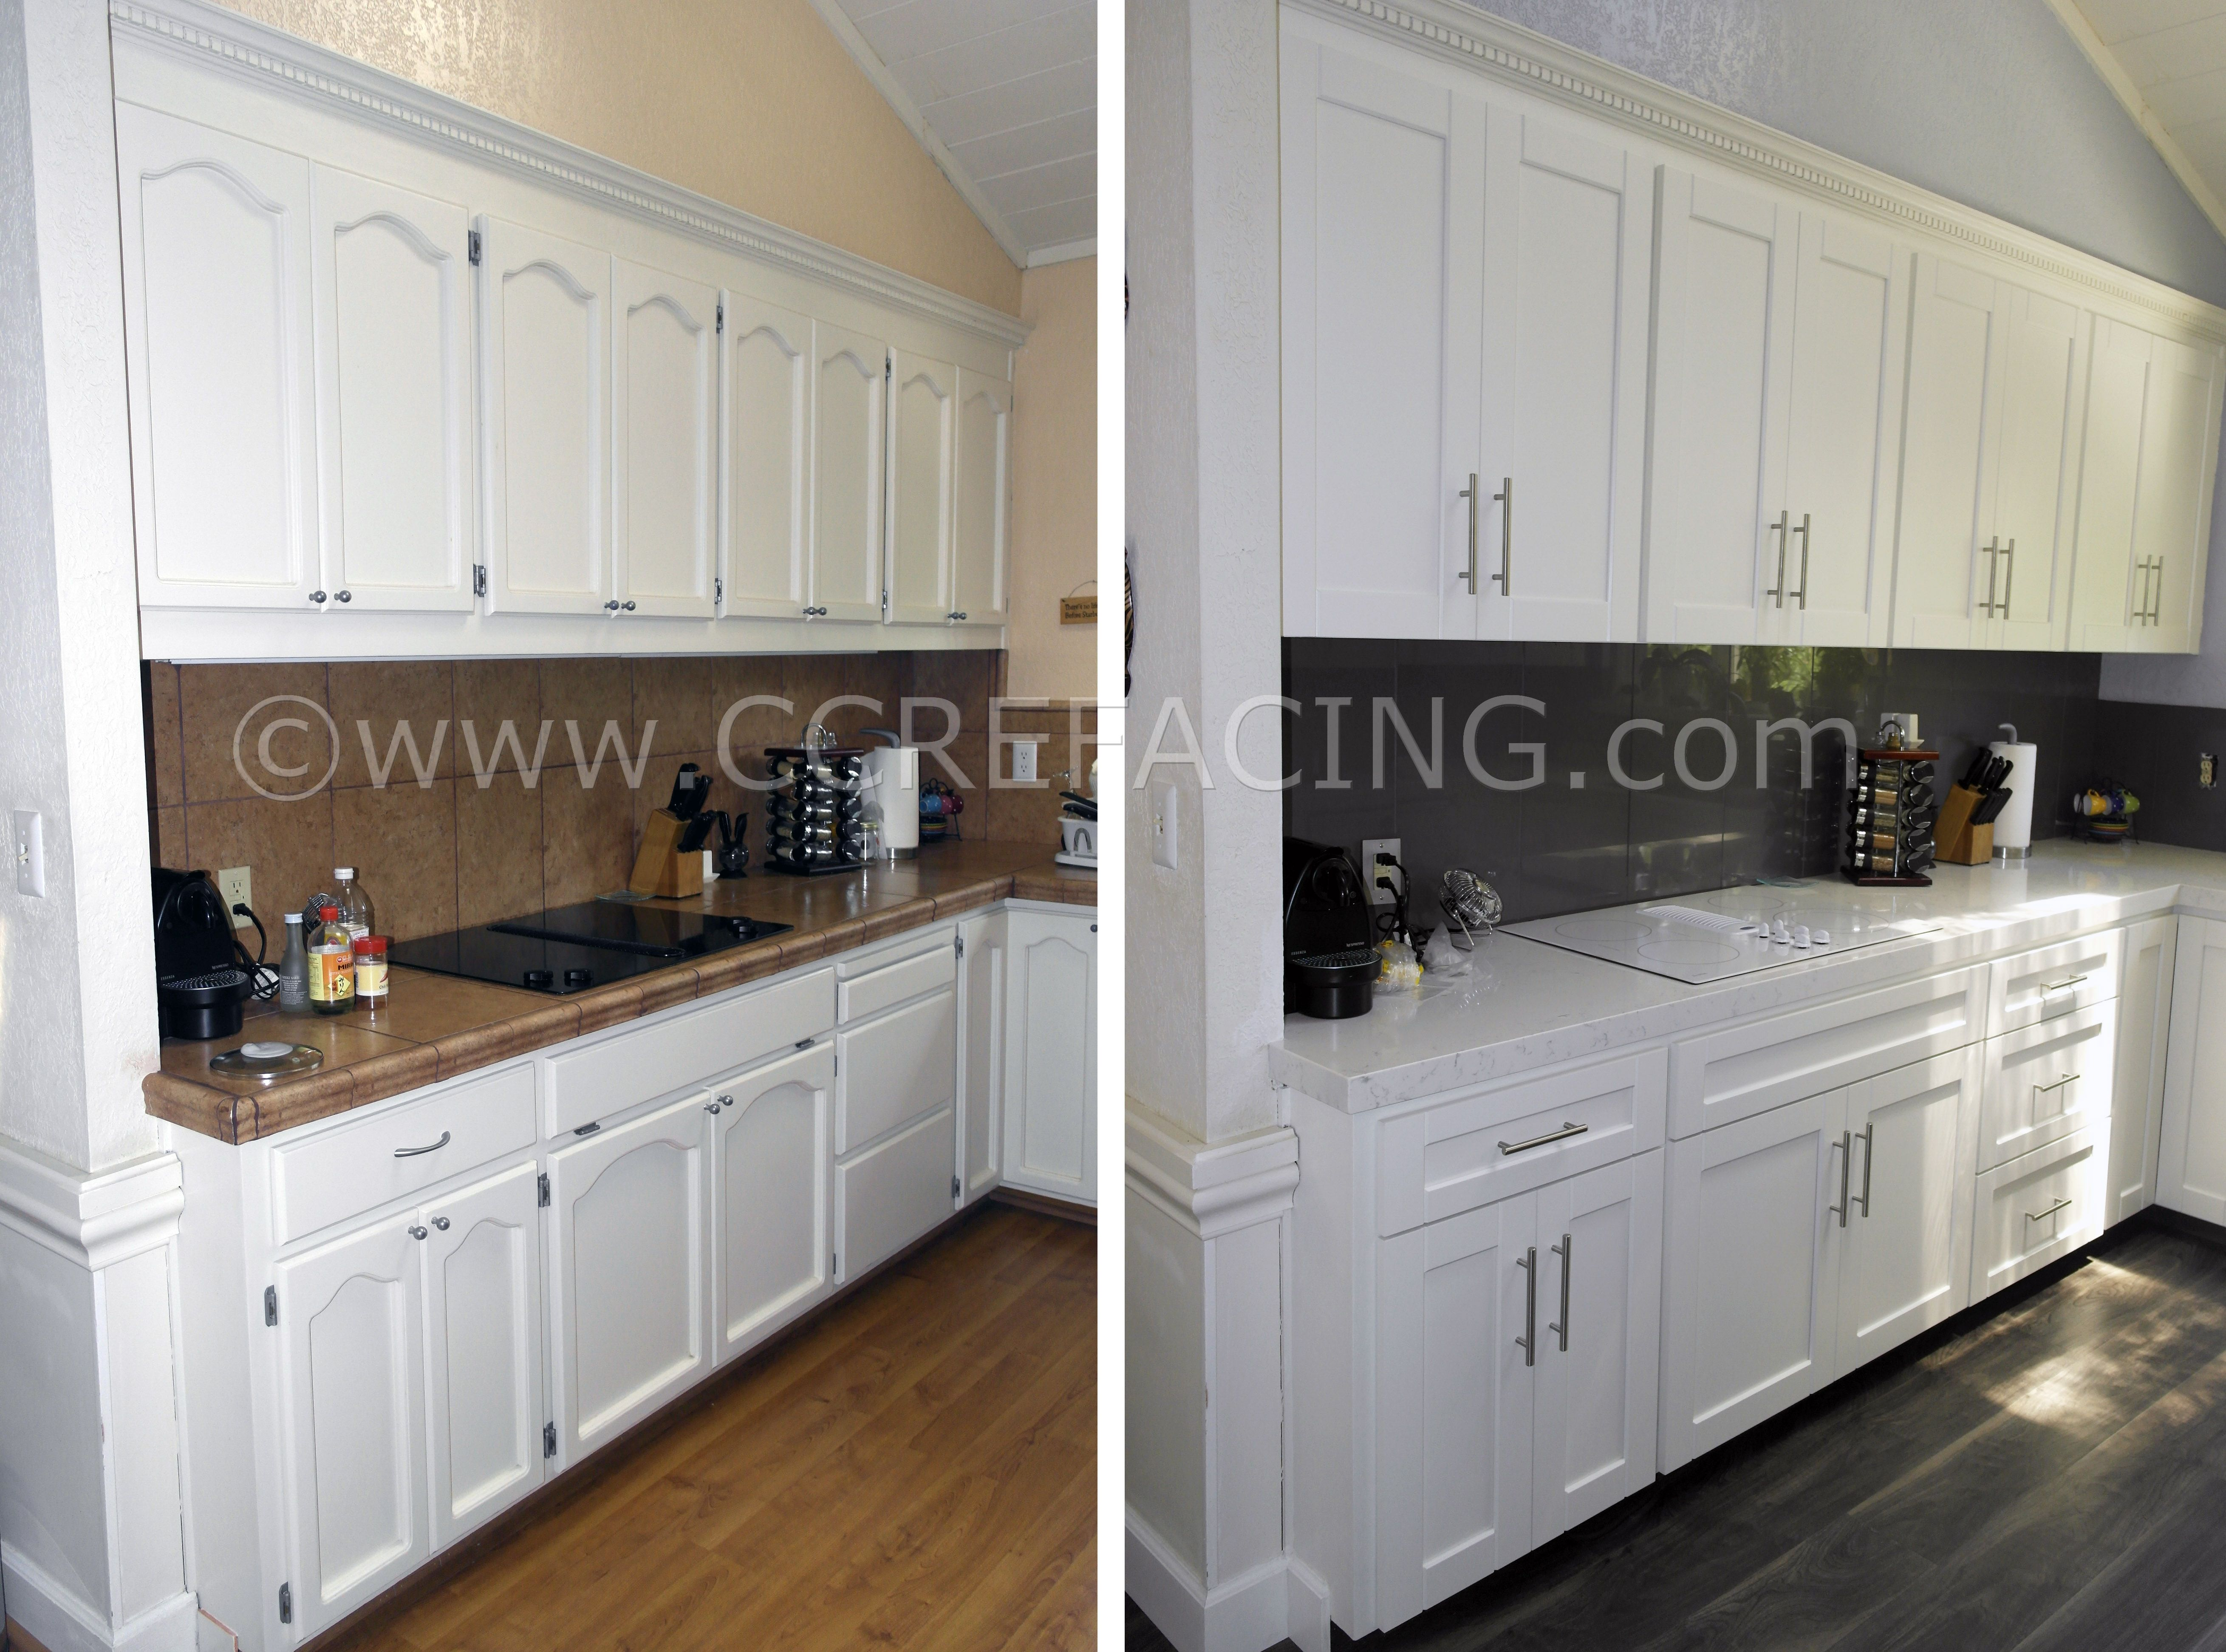 San Leandro Reface Refacing With White Shaker Cabinet Doors White Shaker Cabinets Cabinet Refacing Cabinet